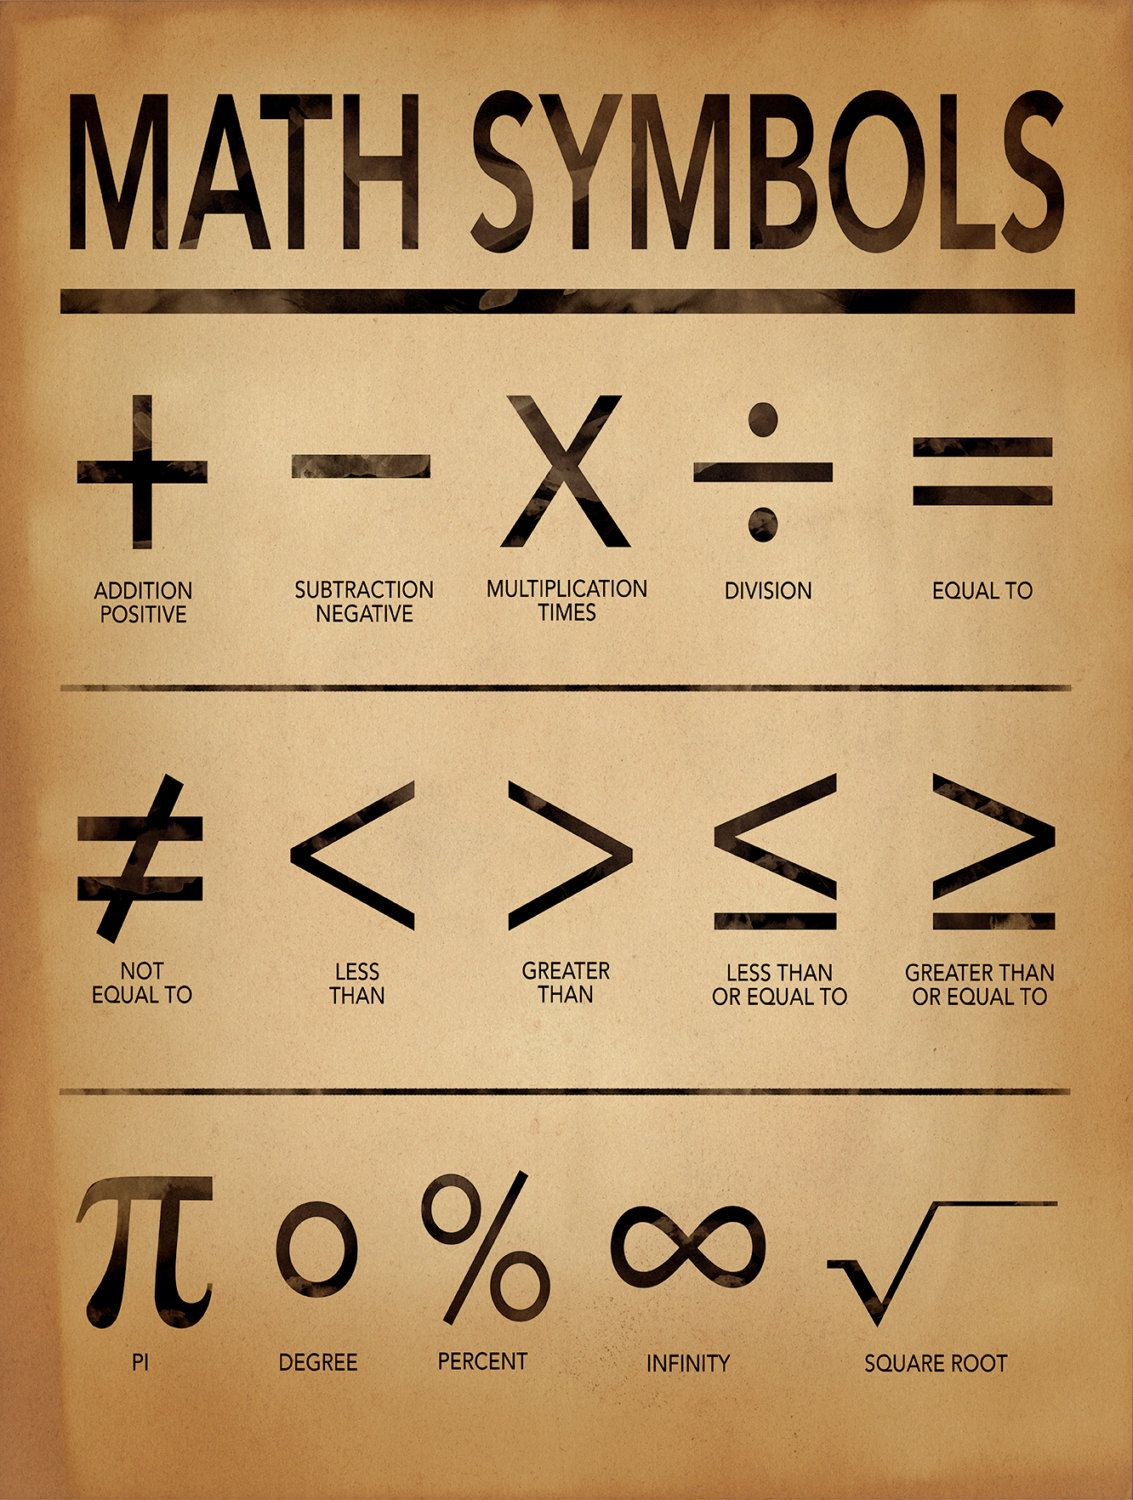 Math Symbols Art Print For Home Office Or Classroom